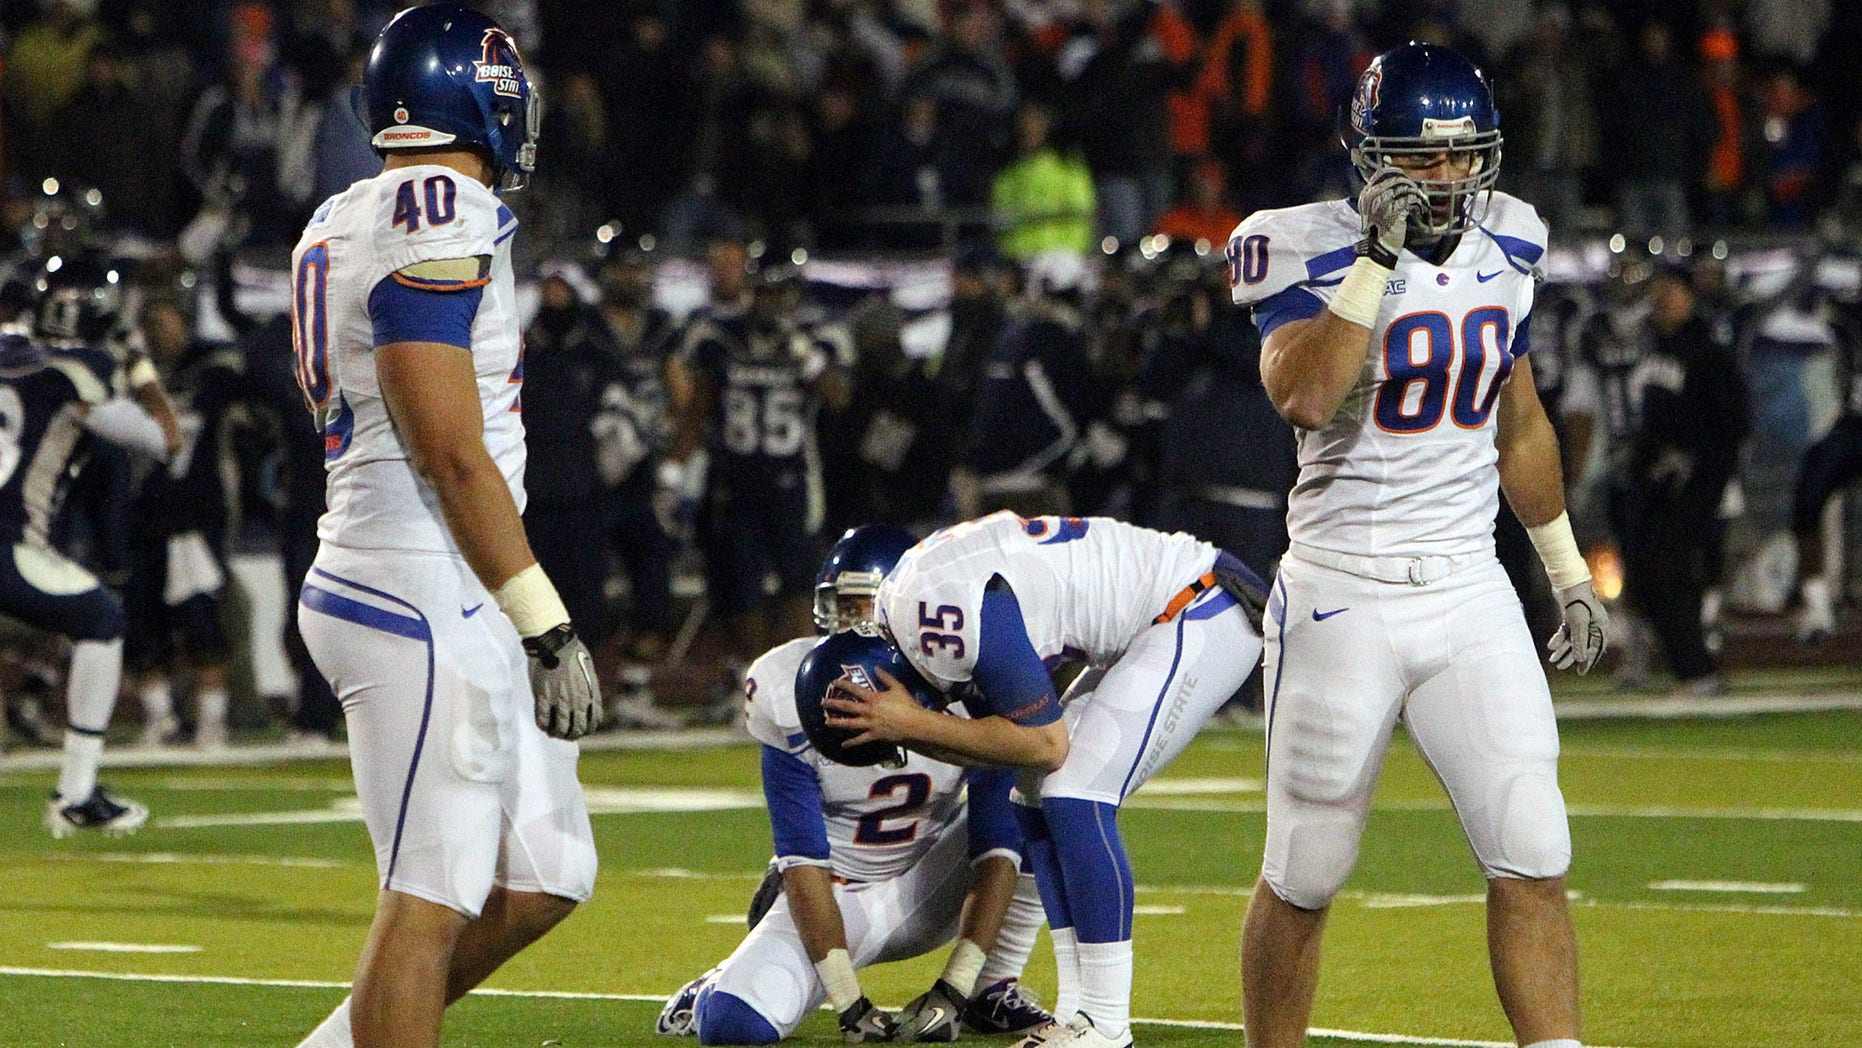 Nov. 27: Boise State Broncos kicker Kyle Brotzman reacts after missing a 29 yard field goal attempt during overtime of the NCAA college football game Friday night in Reno, Nev.